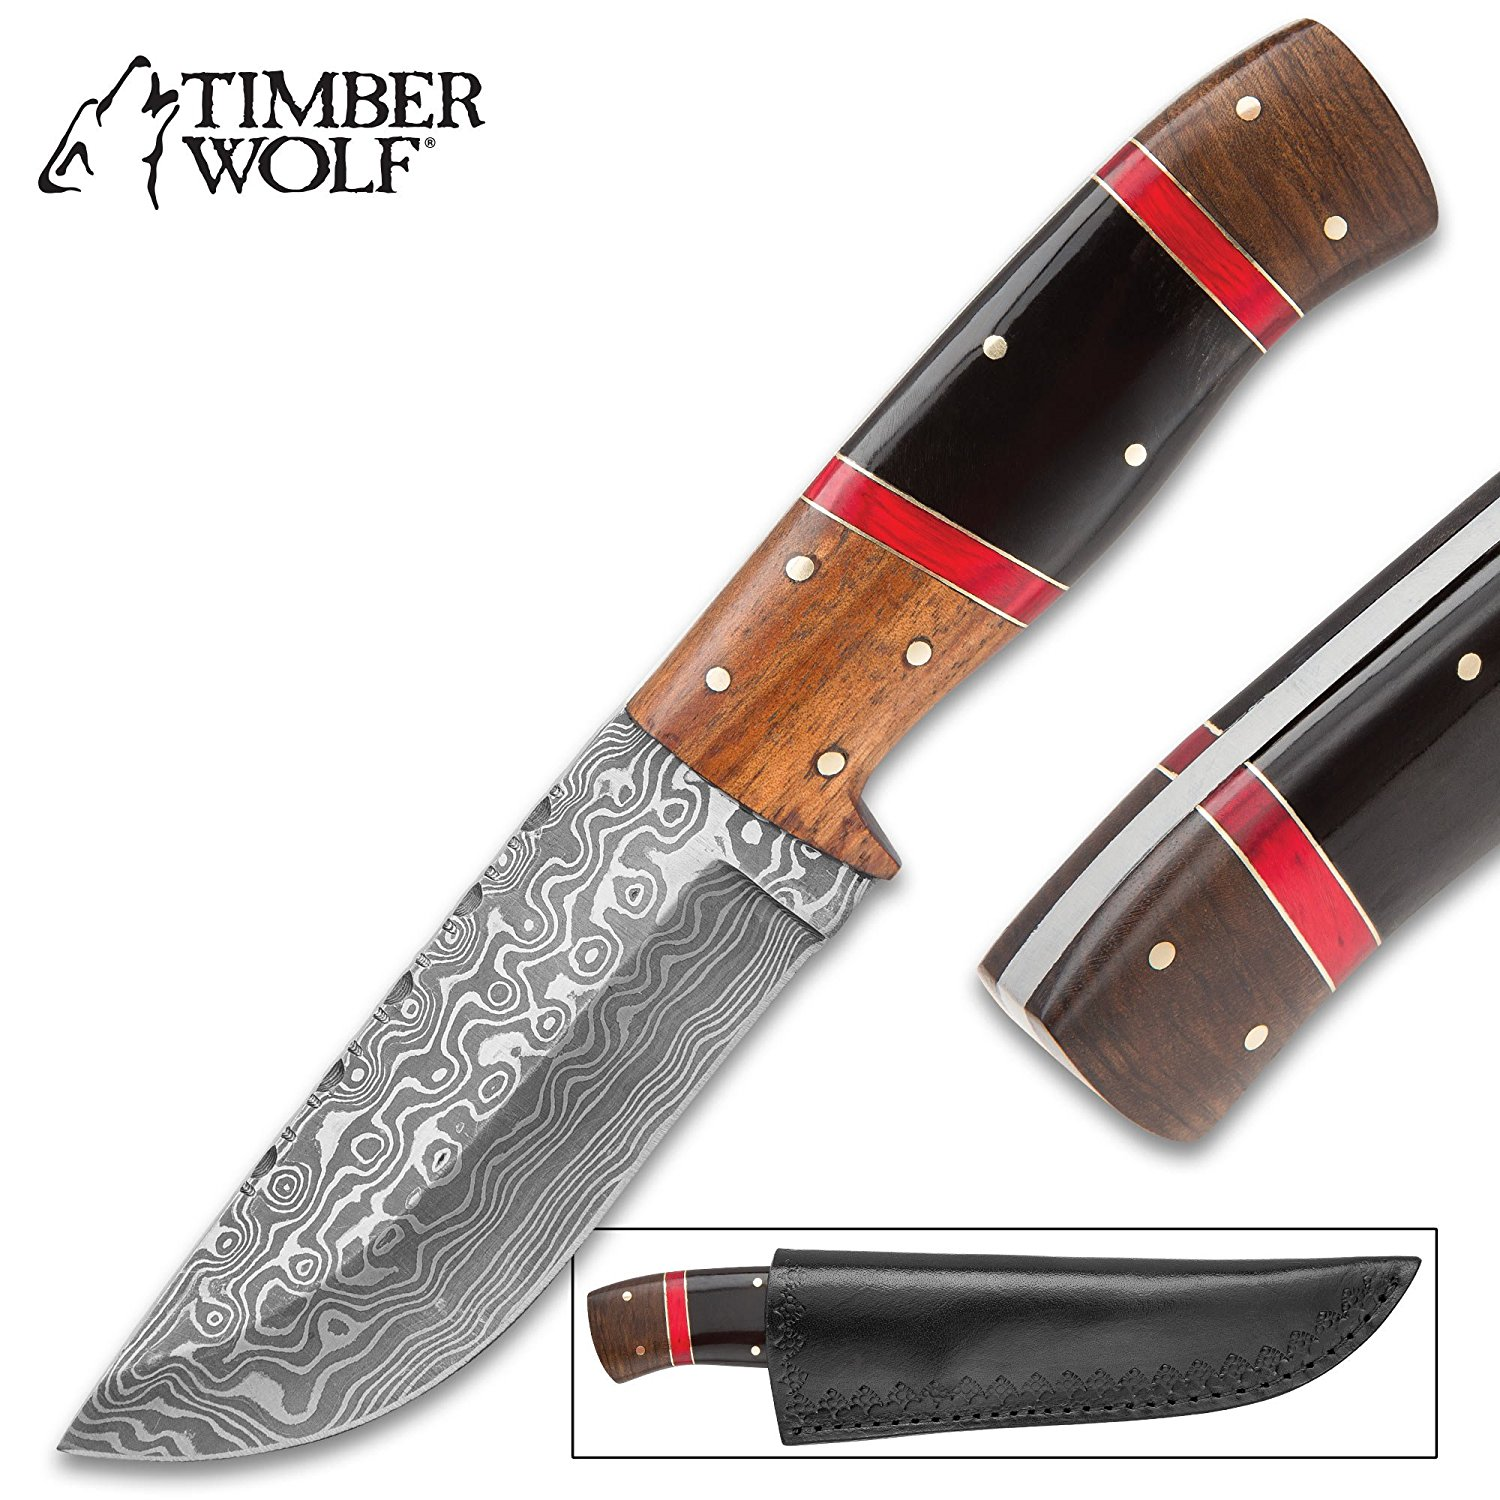 Timber Wolf Syrian Dynasty Fixed Blade Knife – Damascus Steel Blade, Genuine Wood and Bone Handle, Brass Spacers – Length 9 1/4""